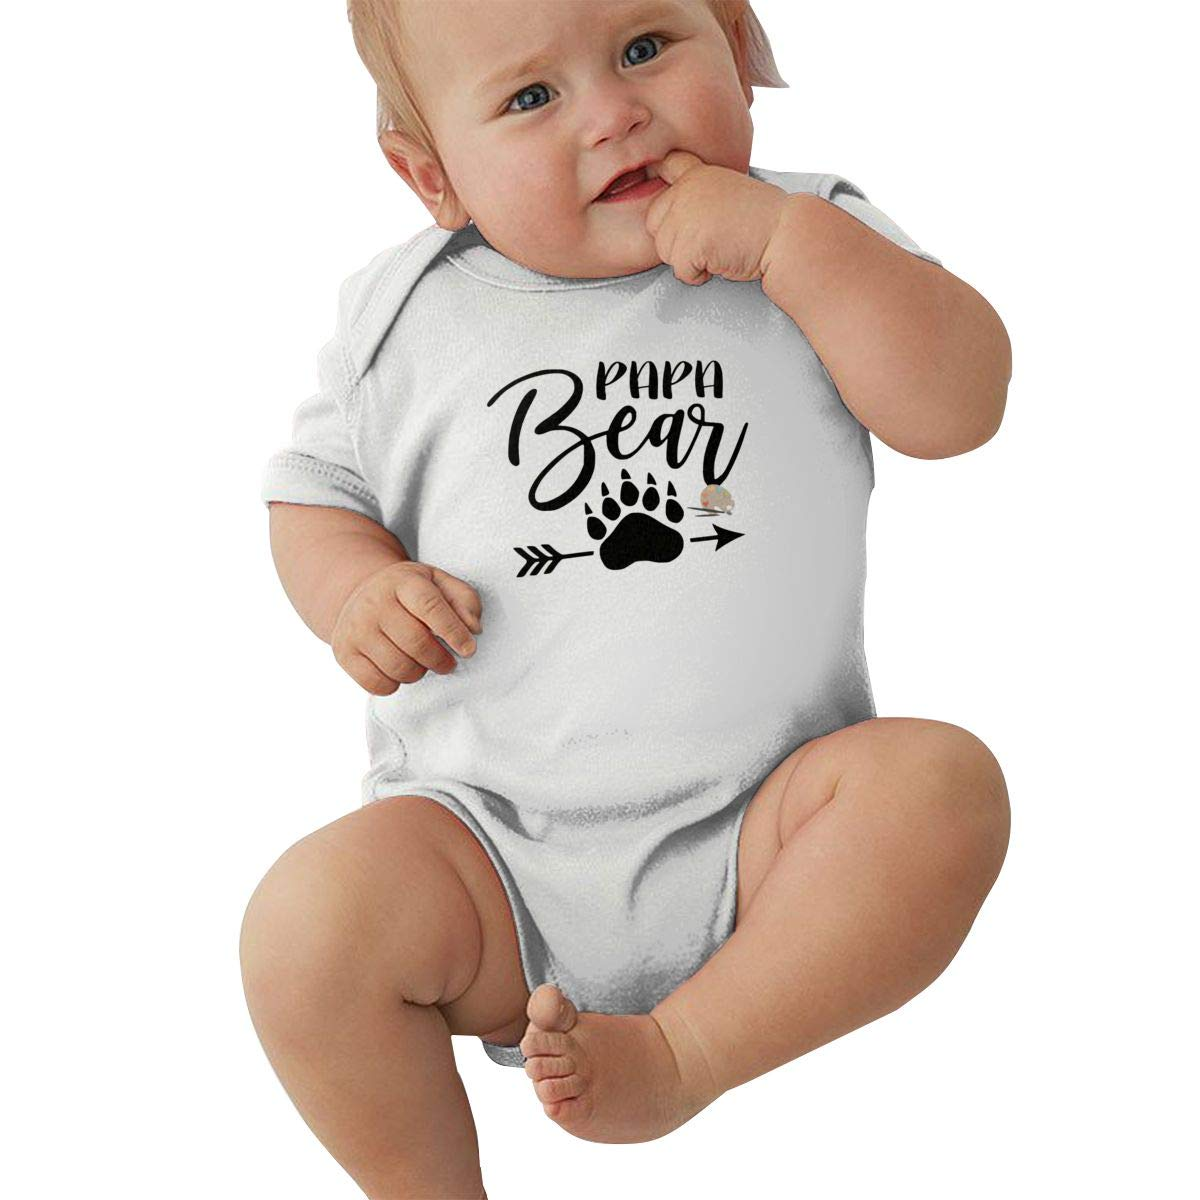 Papa Bear Retro Newborn Baby Short Sleeve Bodysuit Romper Infant Summer Clothing Gray